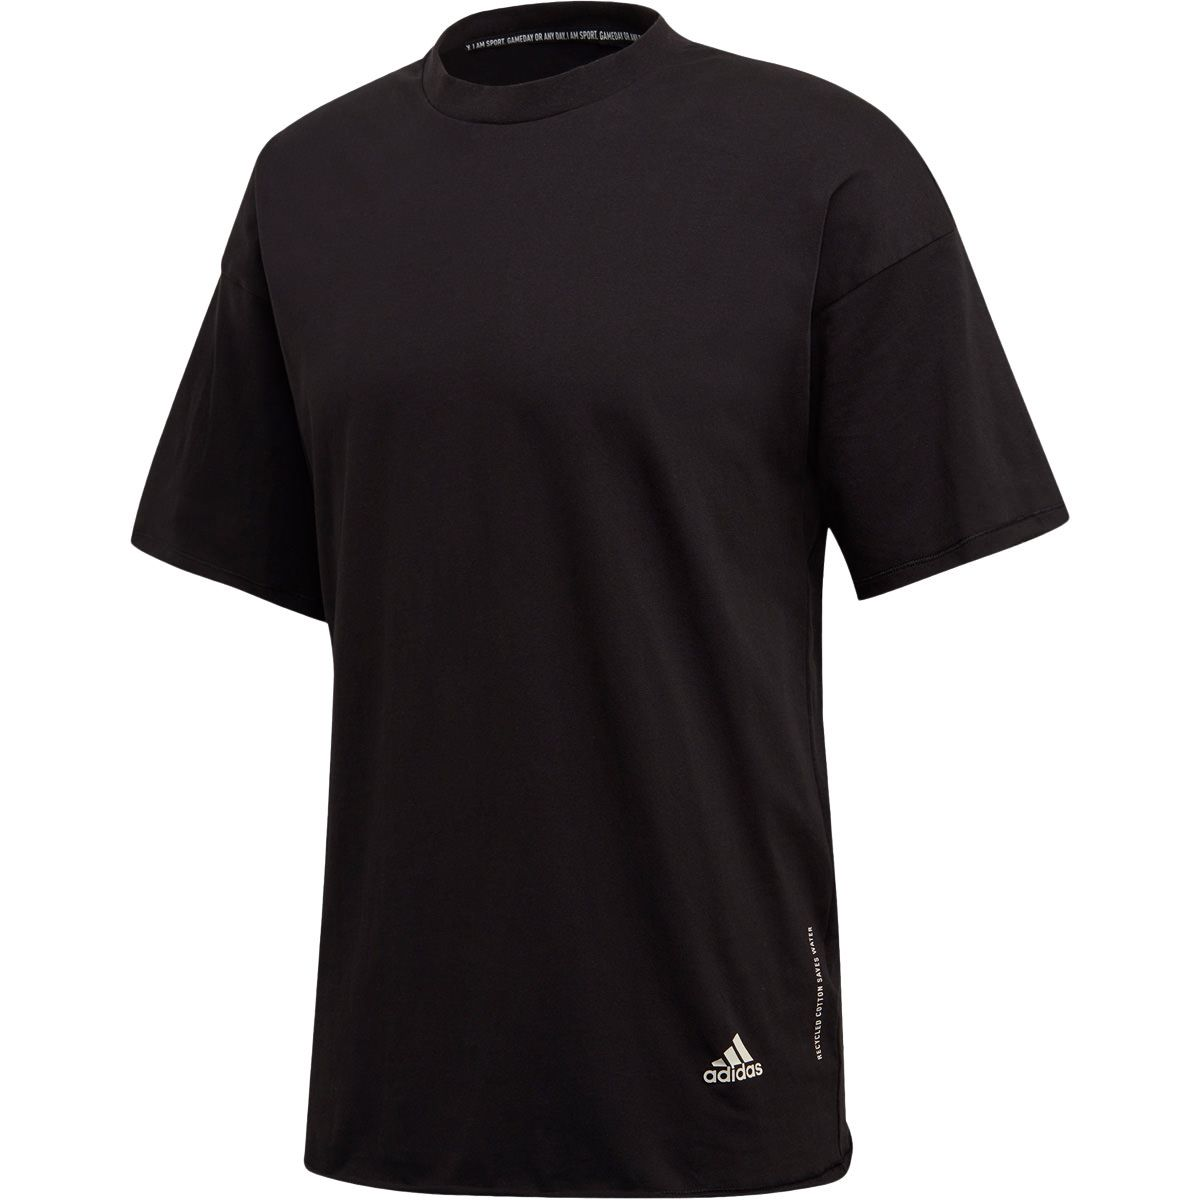 adidas Must Haves Recycled Cotton T-shirt Herre   cykeltrøje